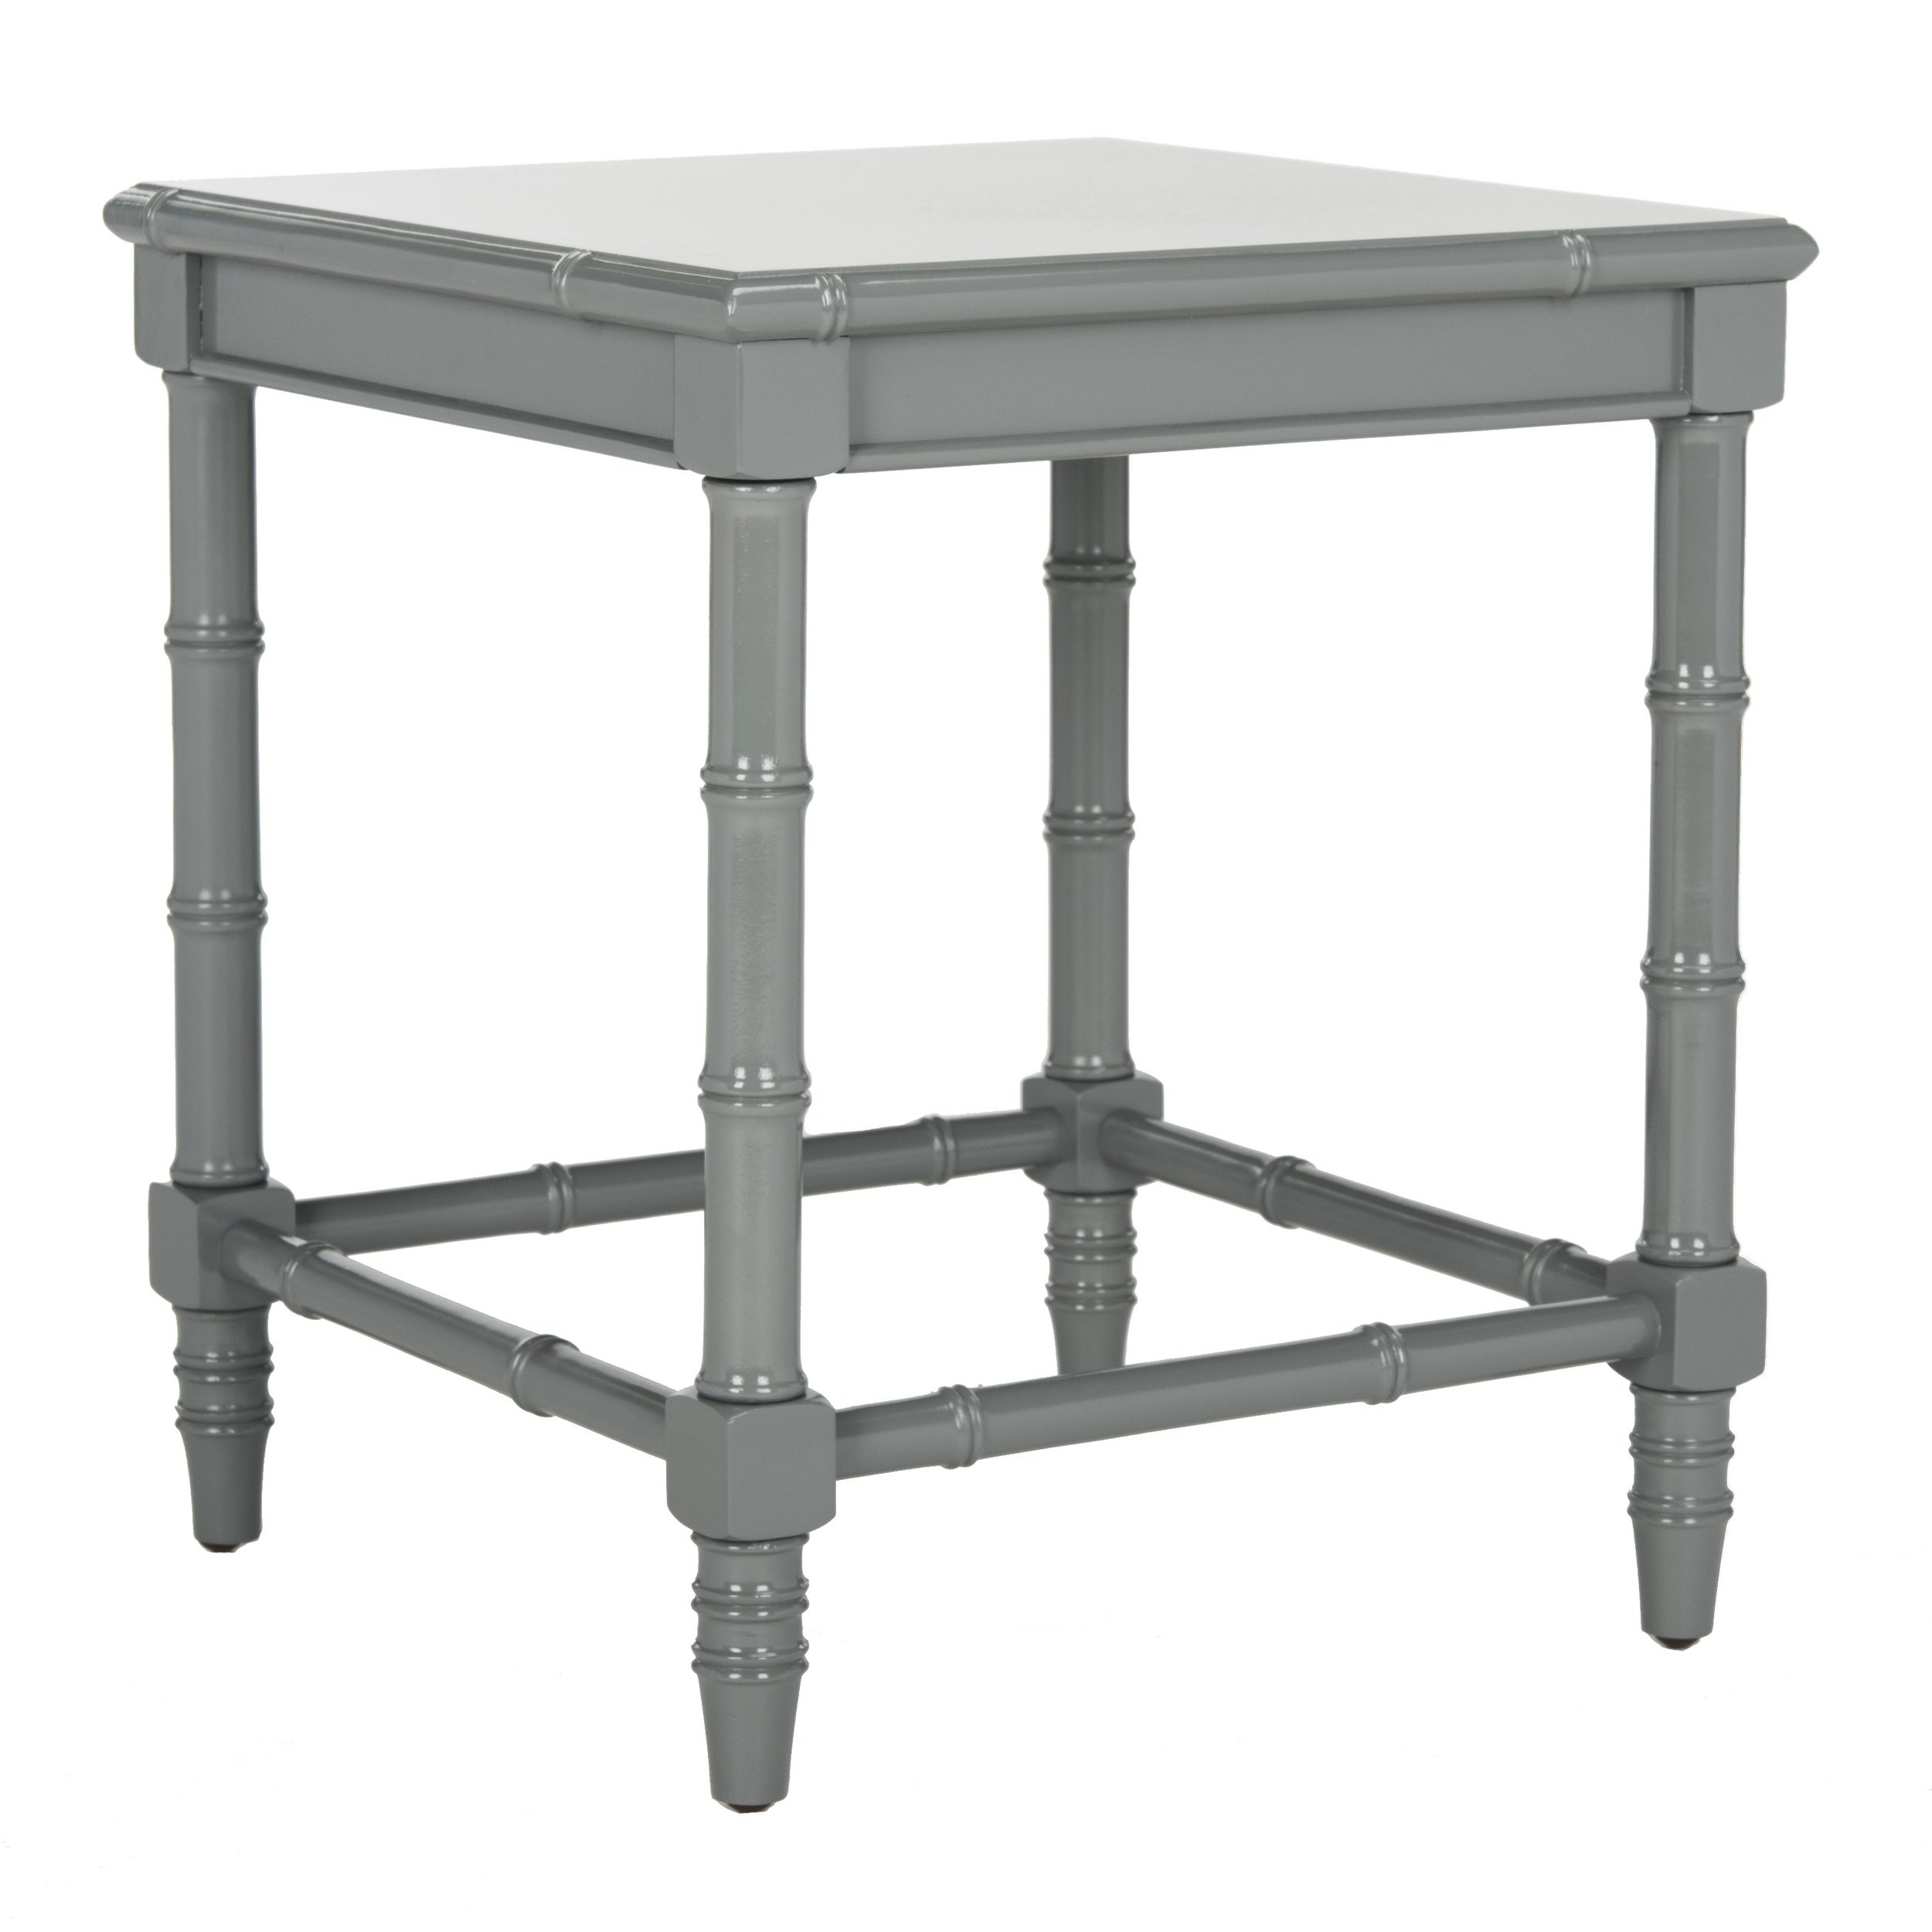 safavieh liviah grey accent table free shipping today janika jcpenney dishes wooden dining chairs outdoor ice bucket square tablecloth ping home decor bbq grill crate side